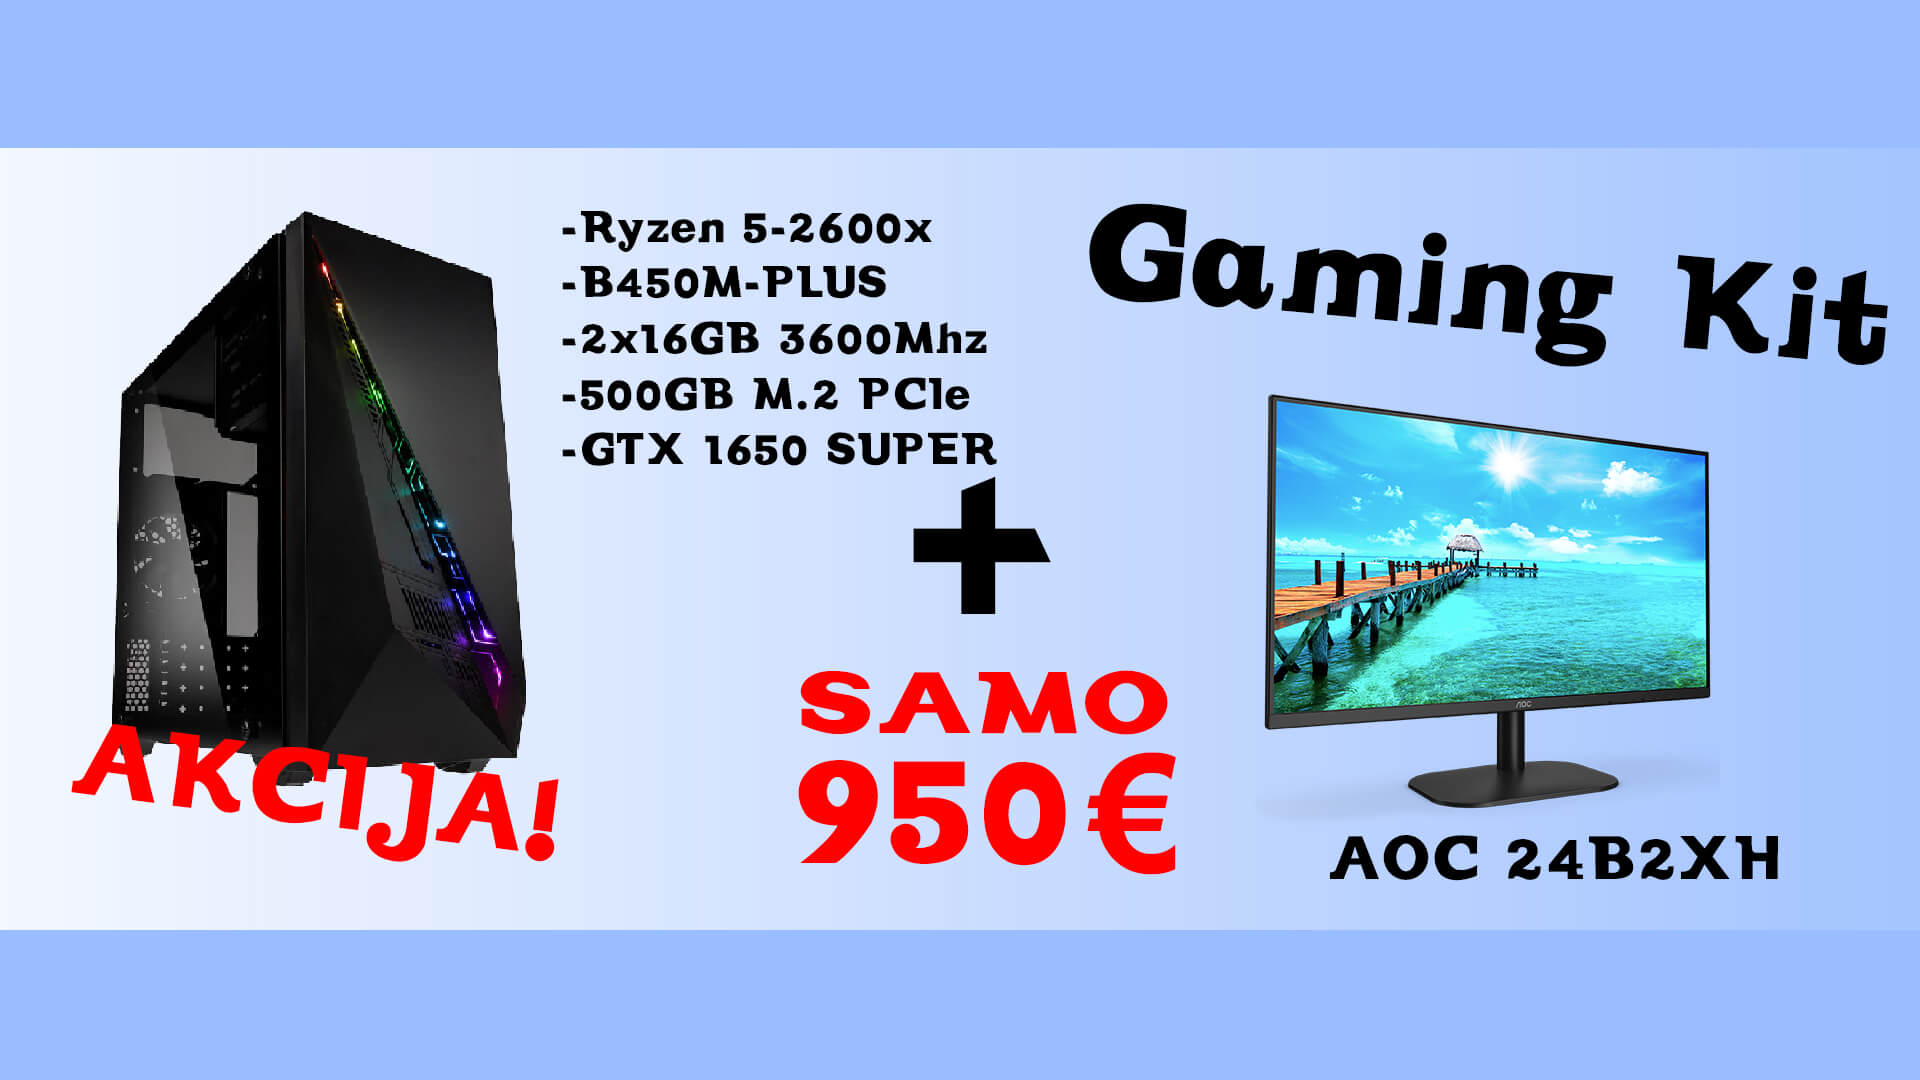 gaming kit akcija